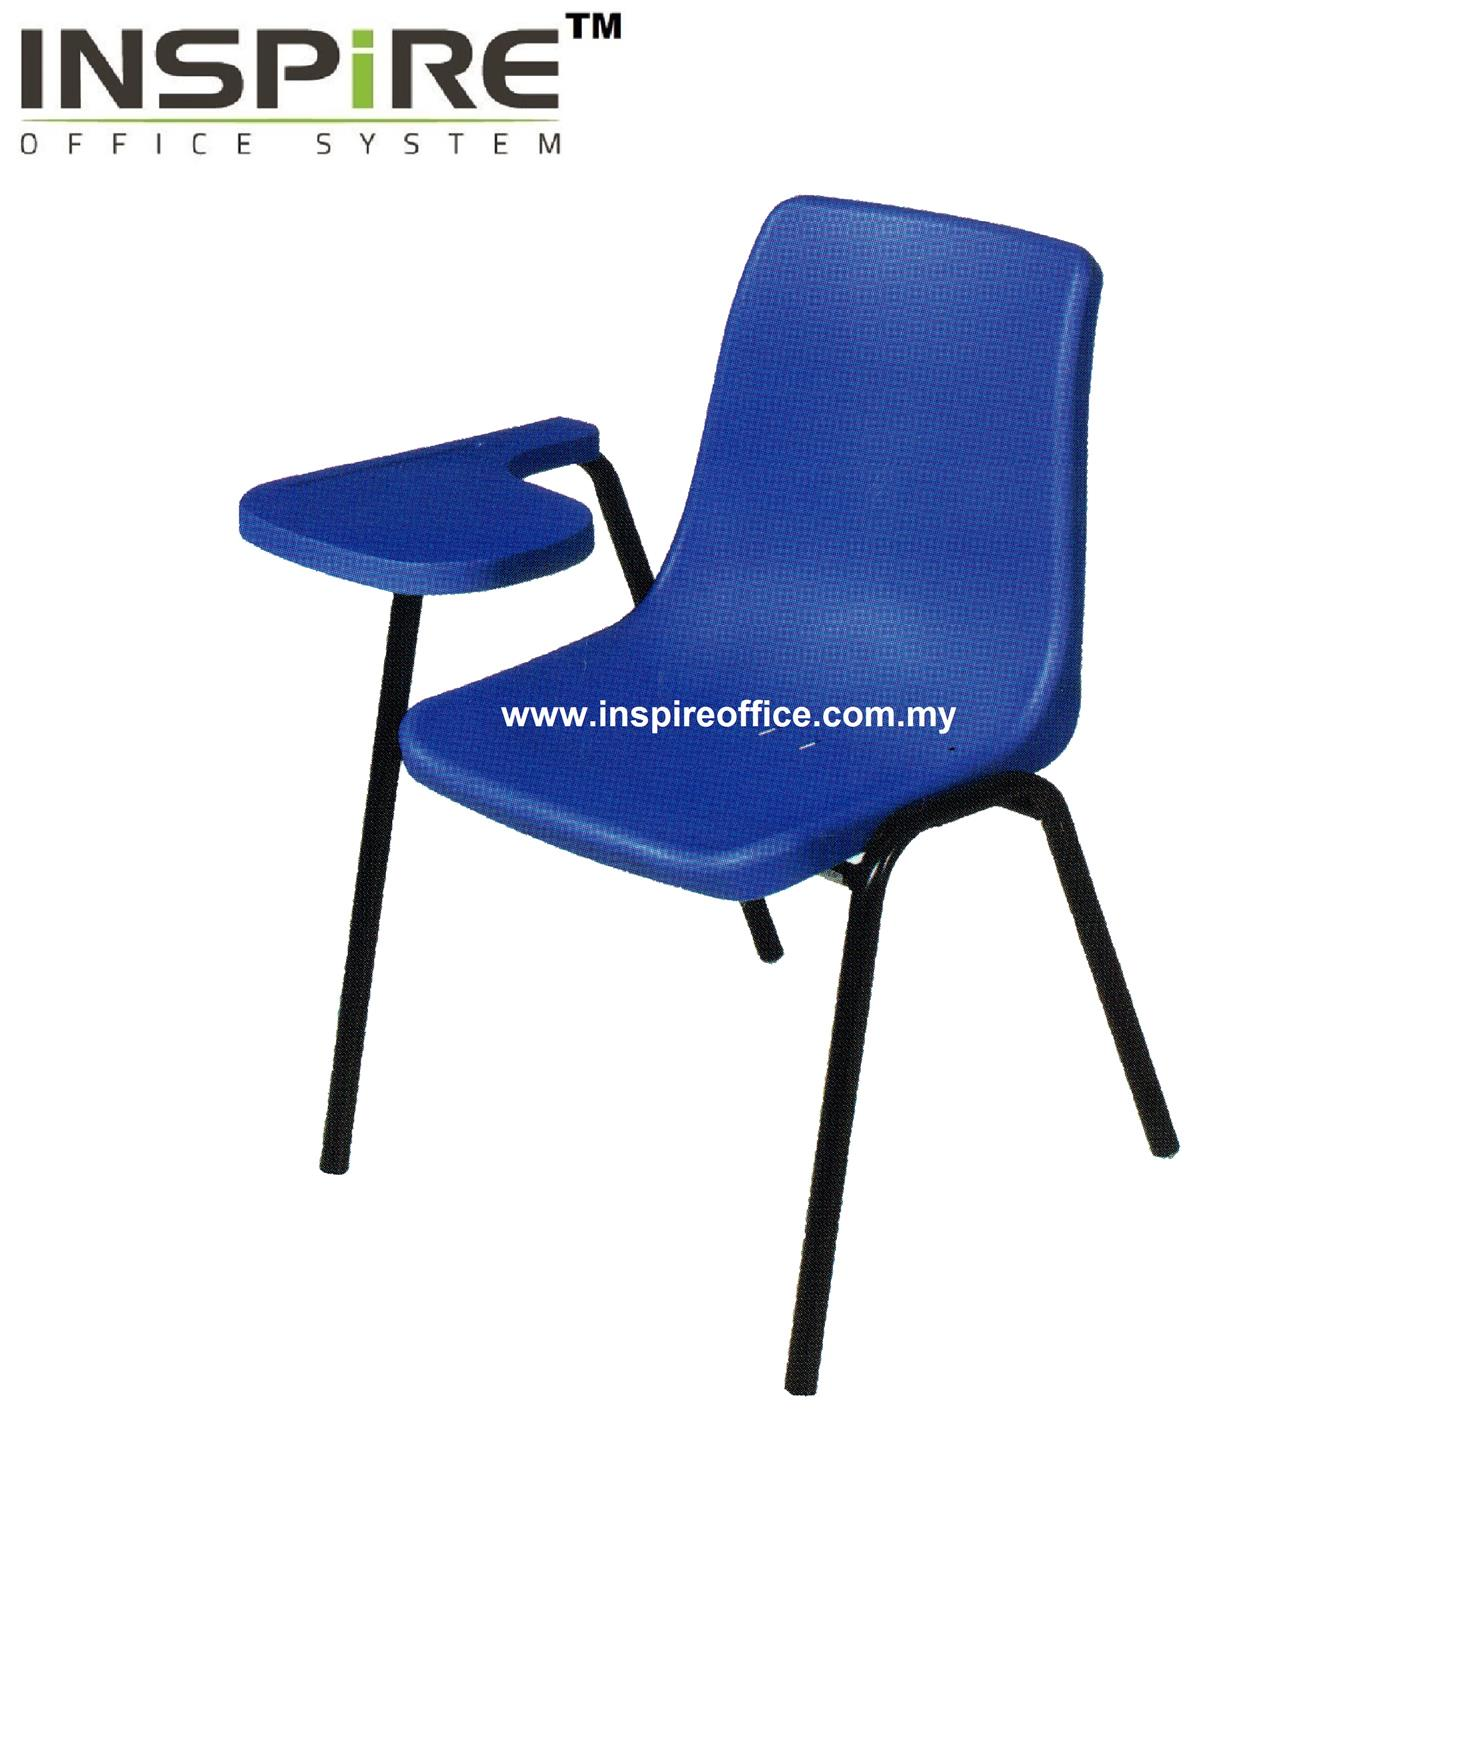 INS-701ST Student/ Study Chair With Tablet